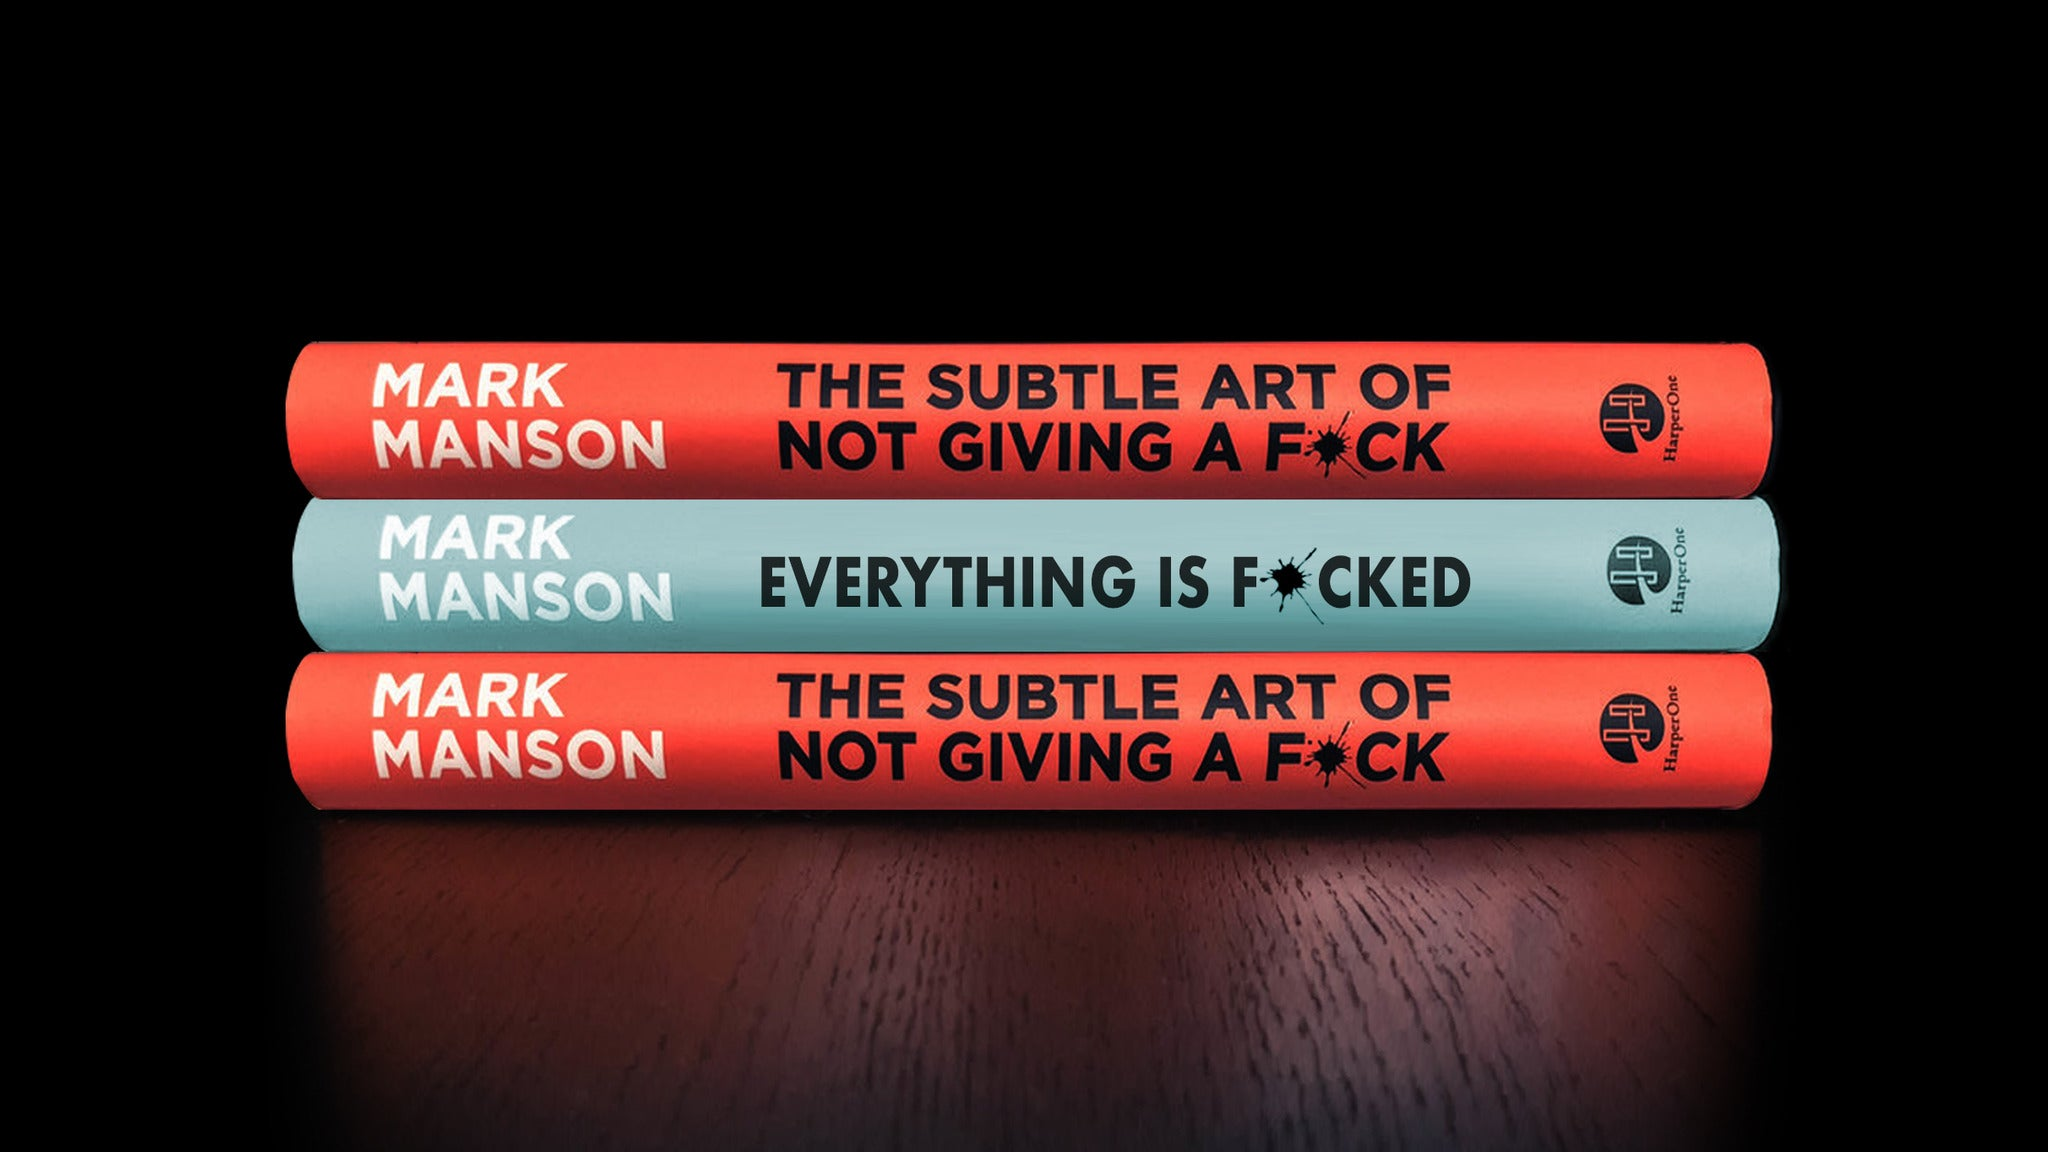 Mark Manson - Everything is F*cked Tour